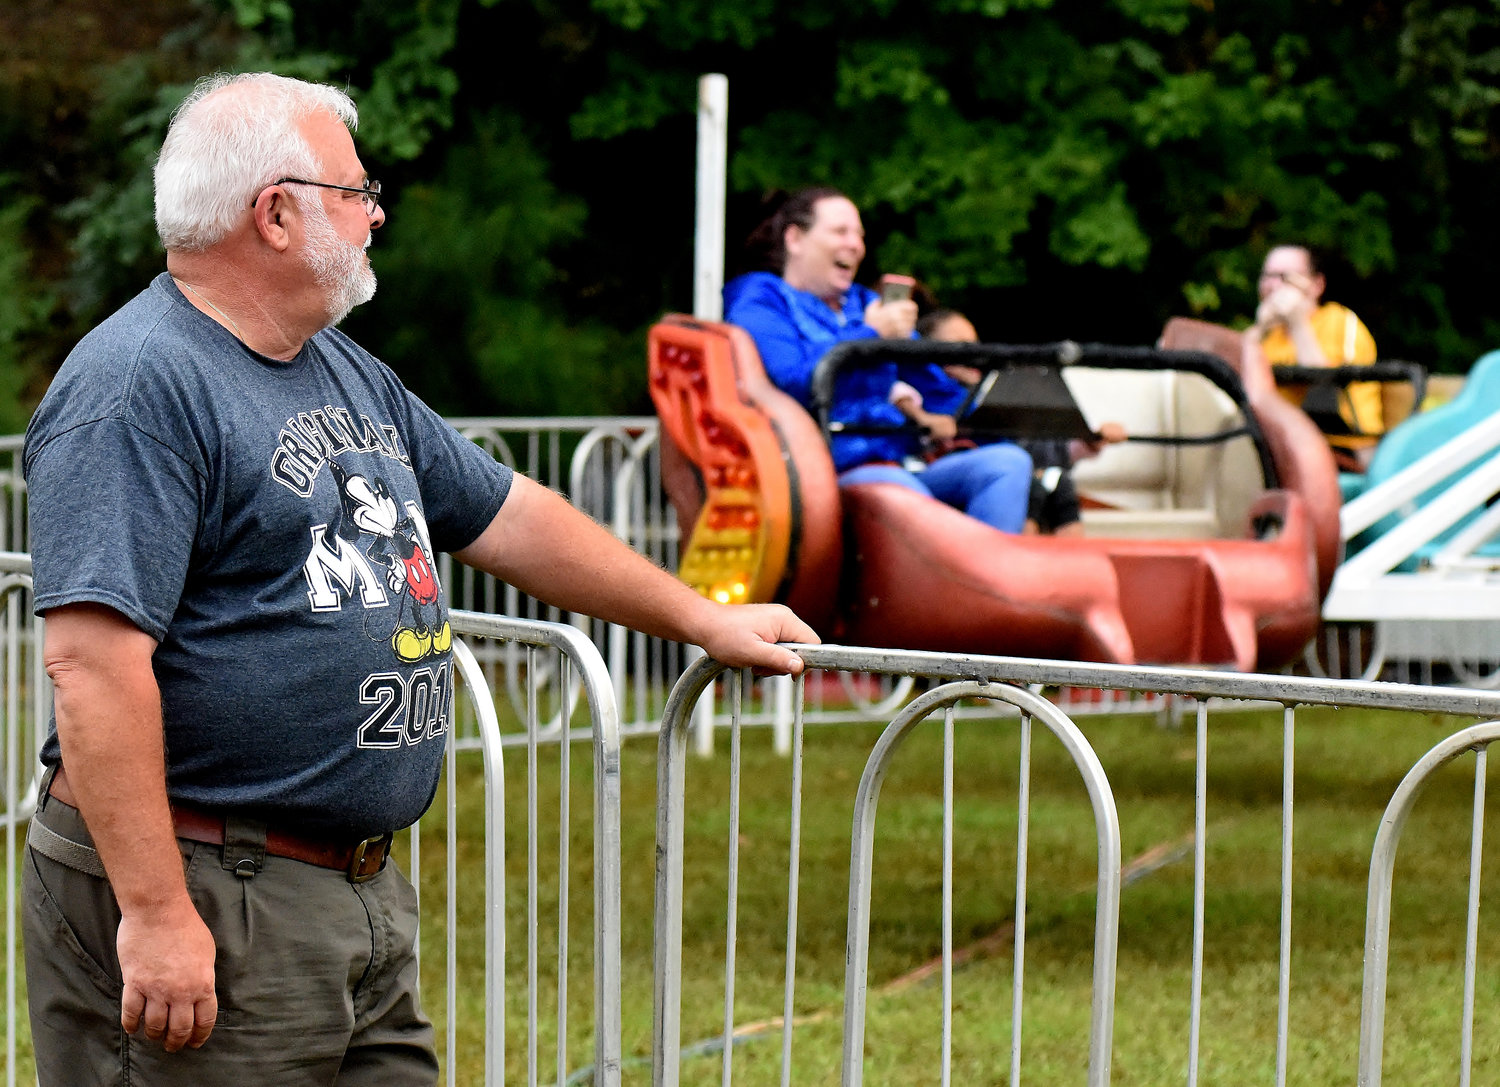 73rd Bartow County Fair wraps up today   The Daily Tribune News